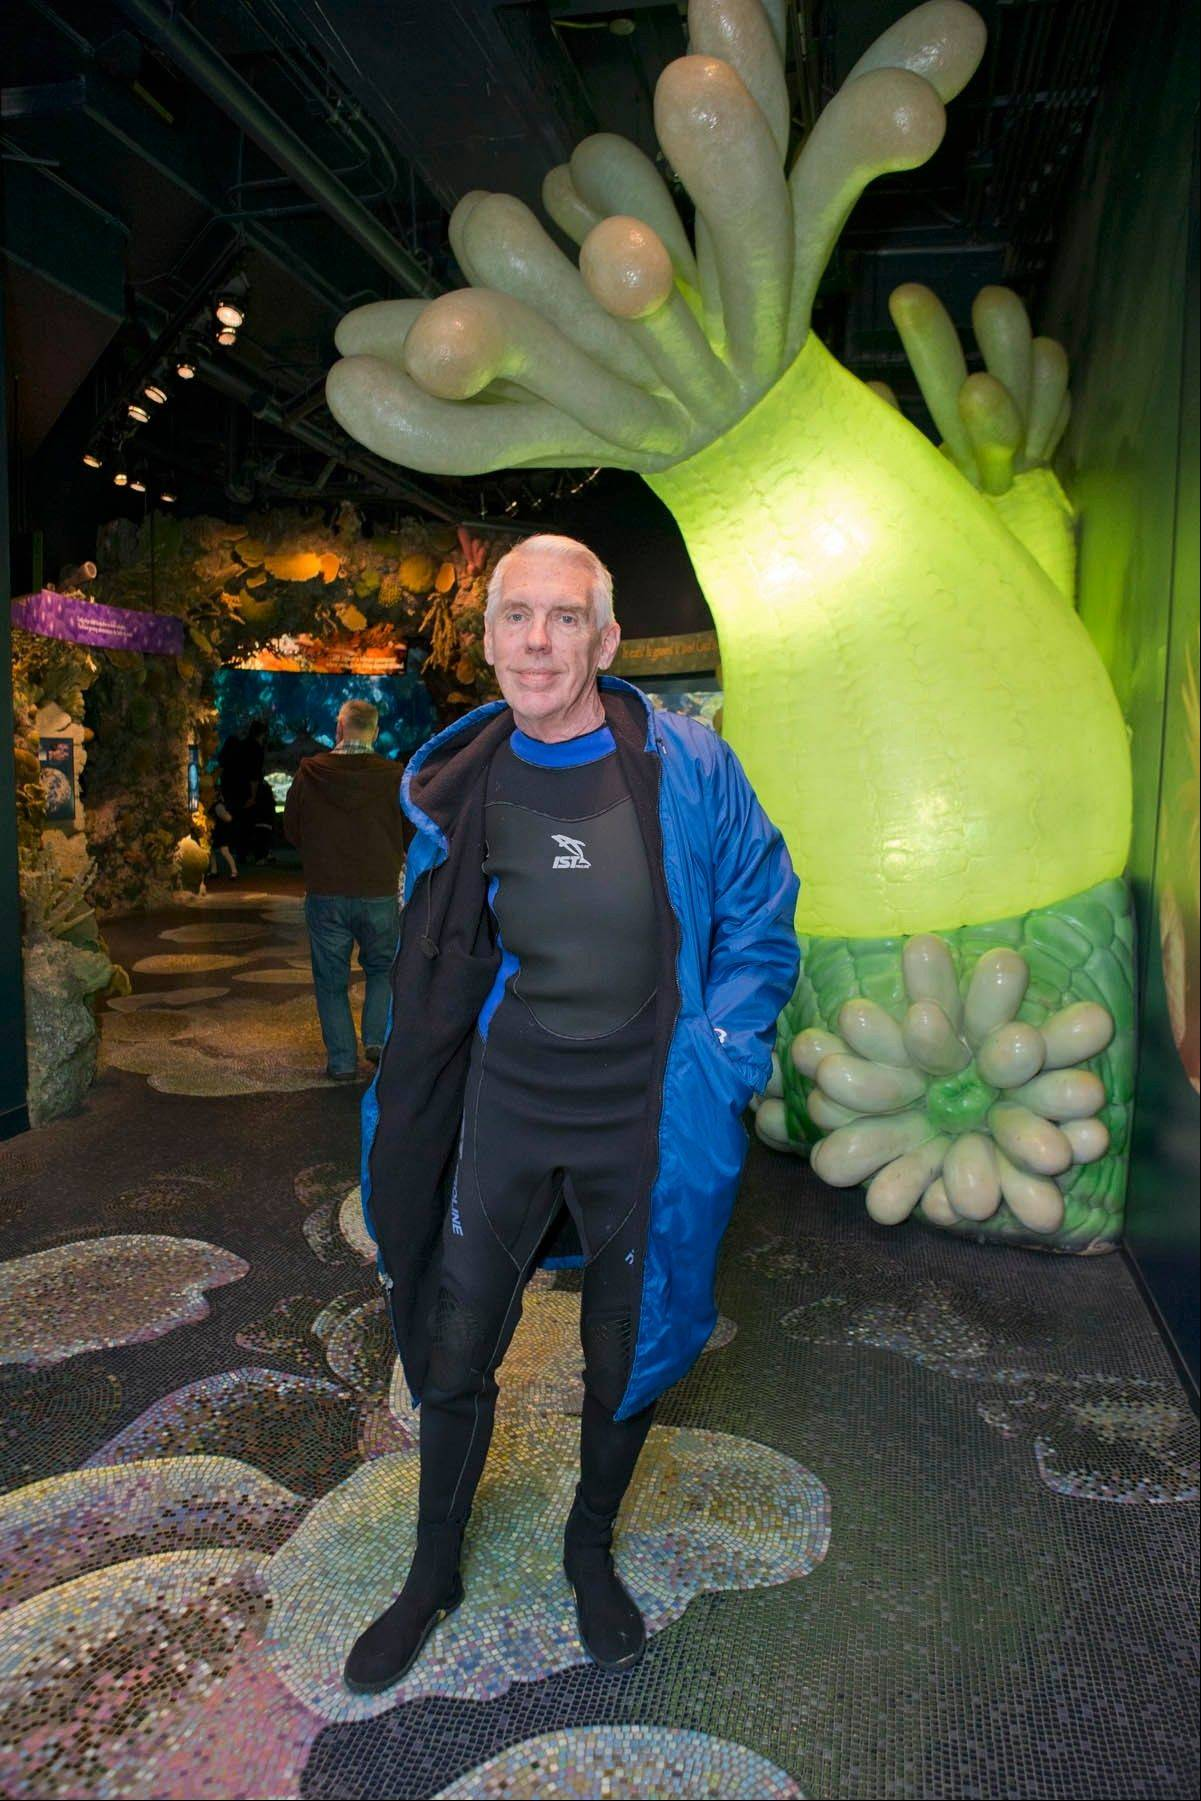 Lou Nesslar has done volunteer work at the Shedd Aquarium for 10 years. �I�m working harder now than when I was working,� he says. �It�s unreal.�